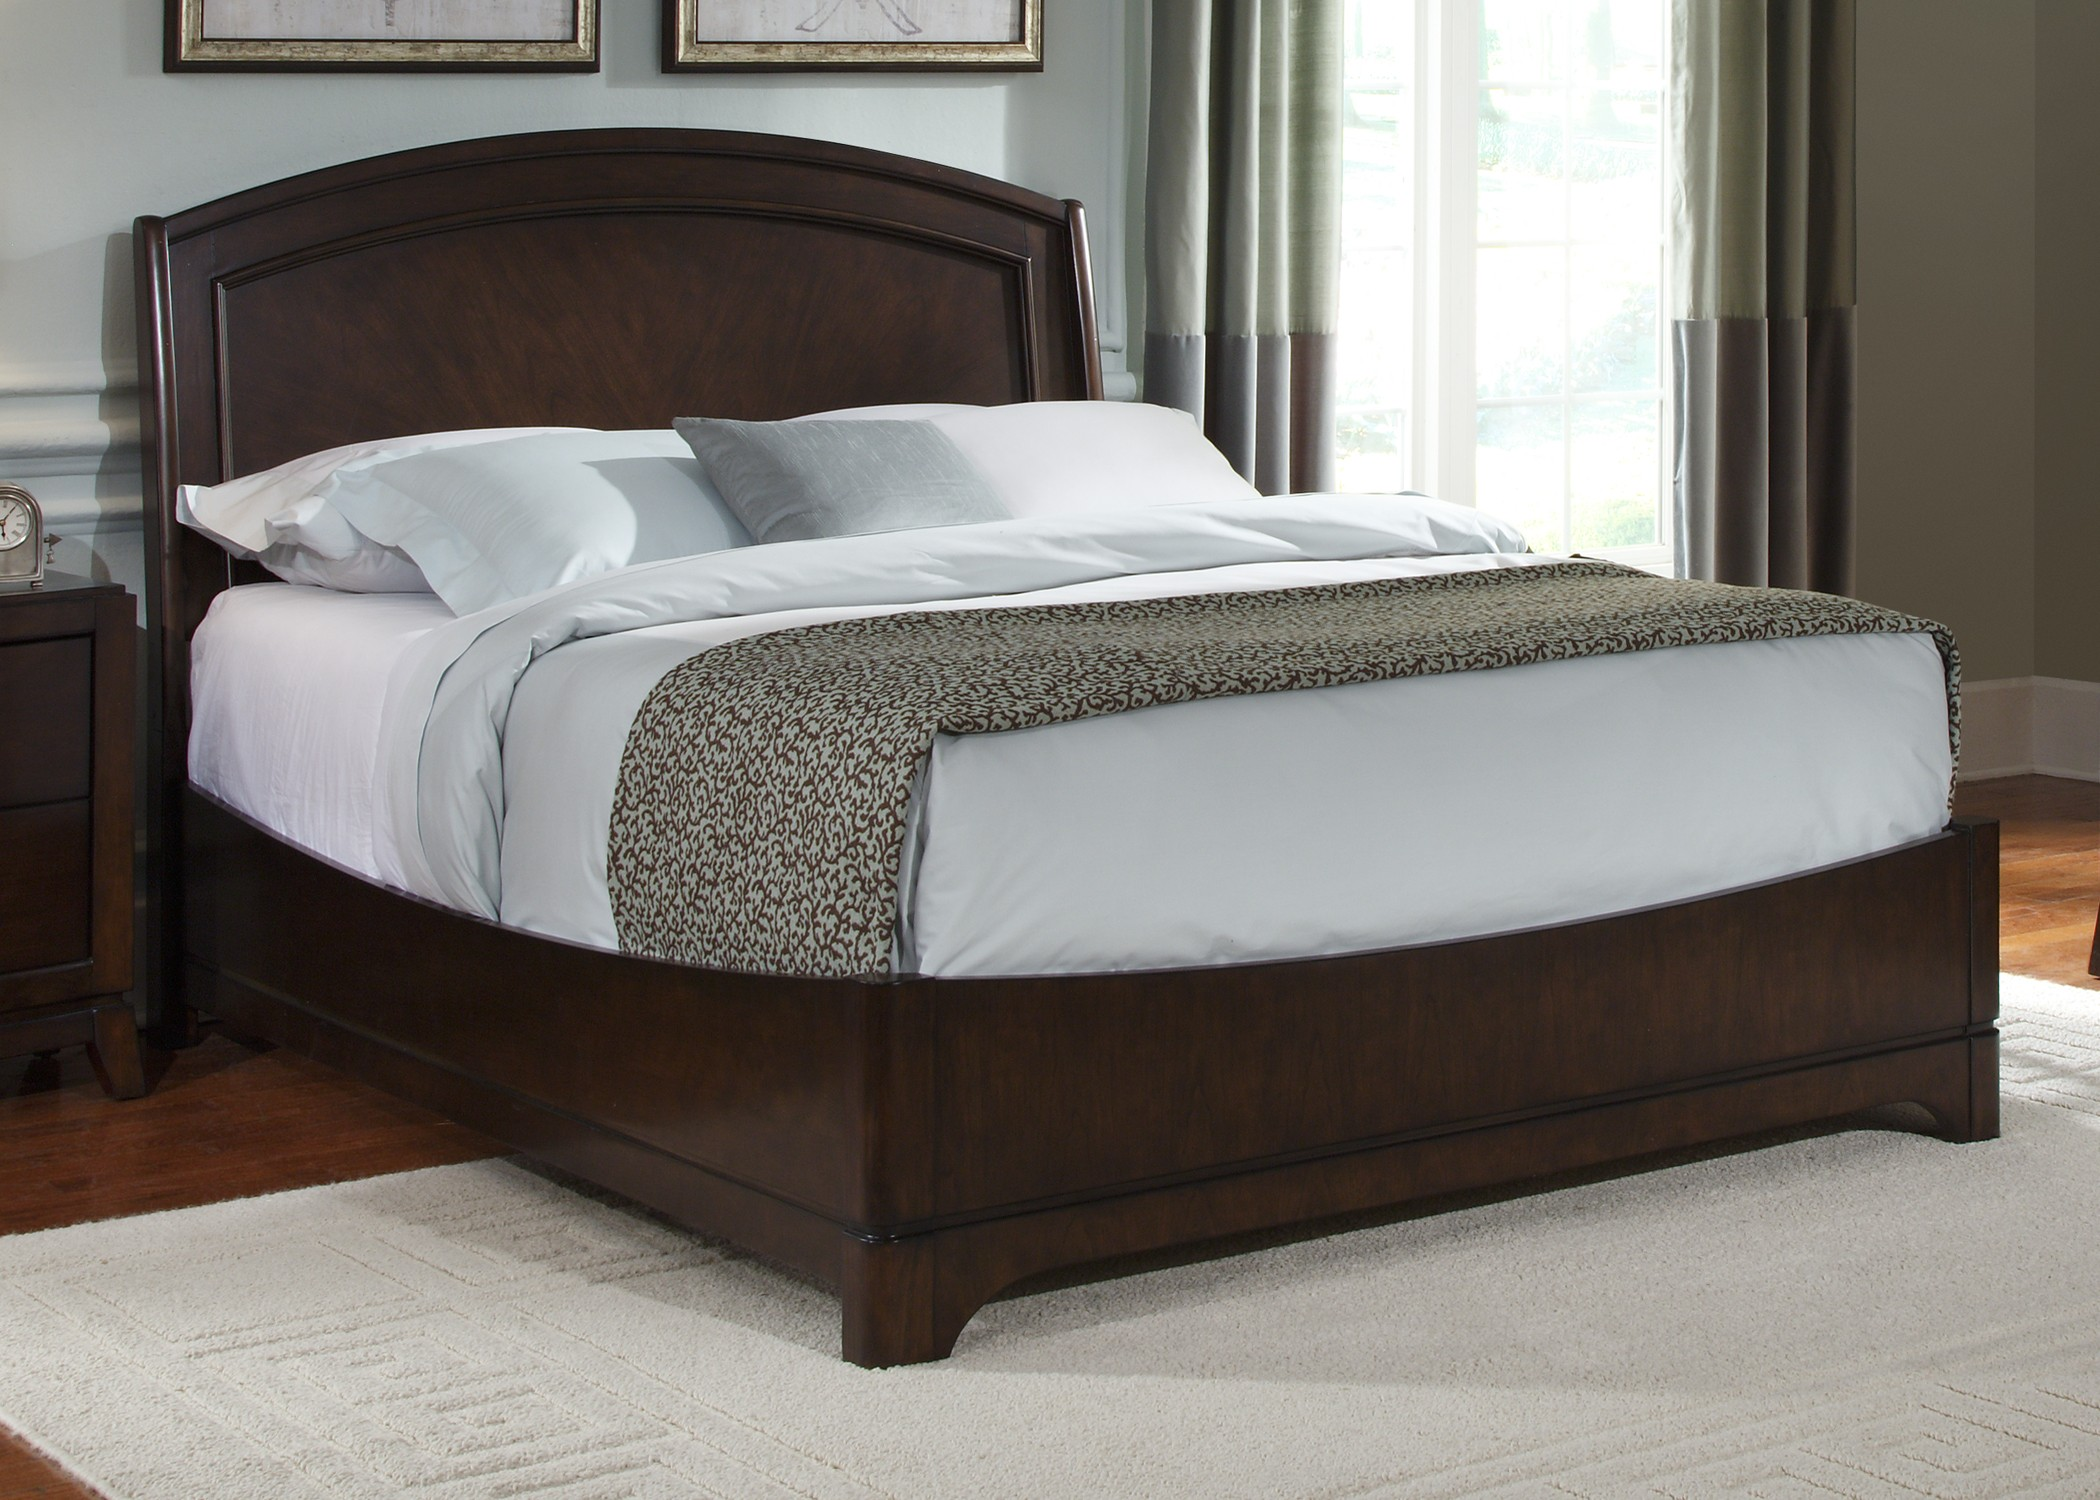 avalon platform bedroom set from liberty 505 br qpl coleman